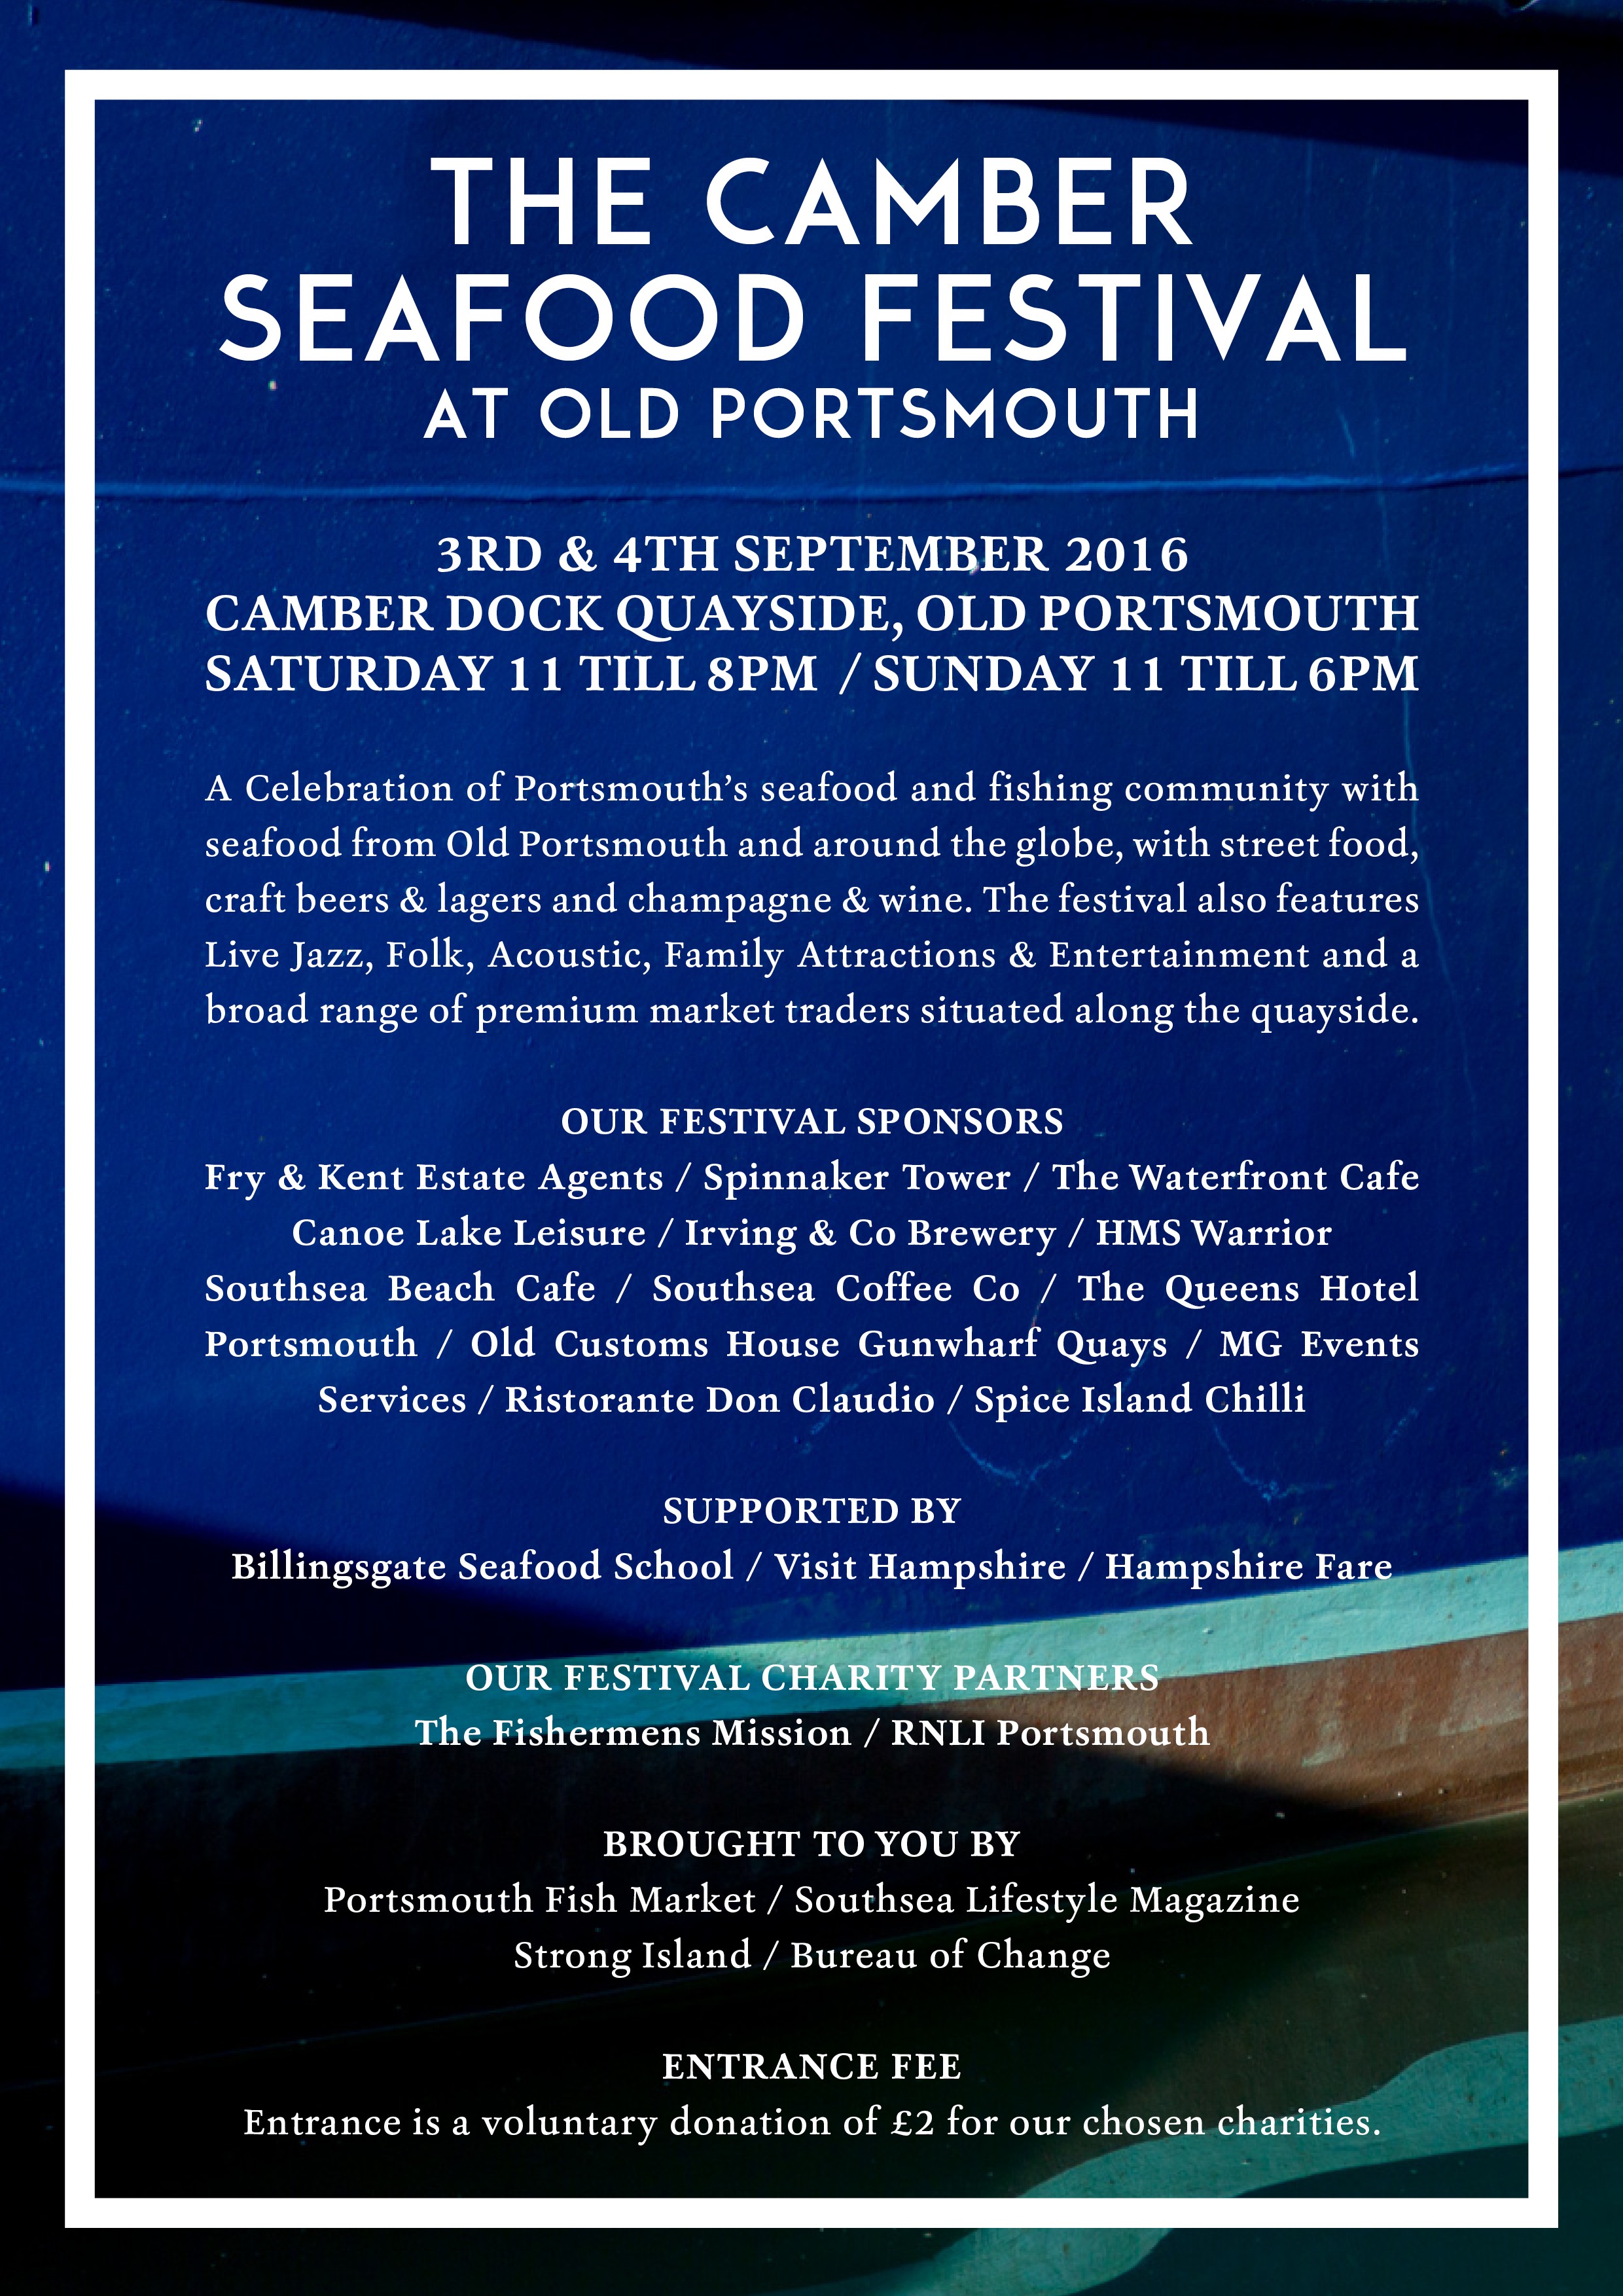 The Camber Seafood Festival